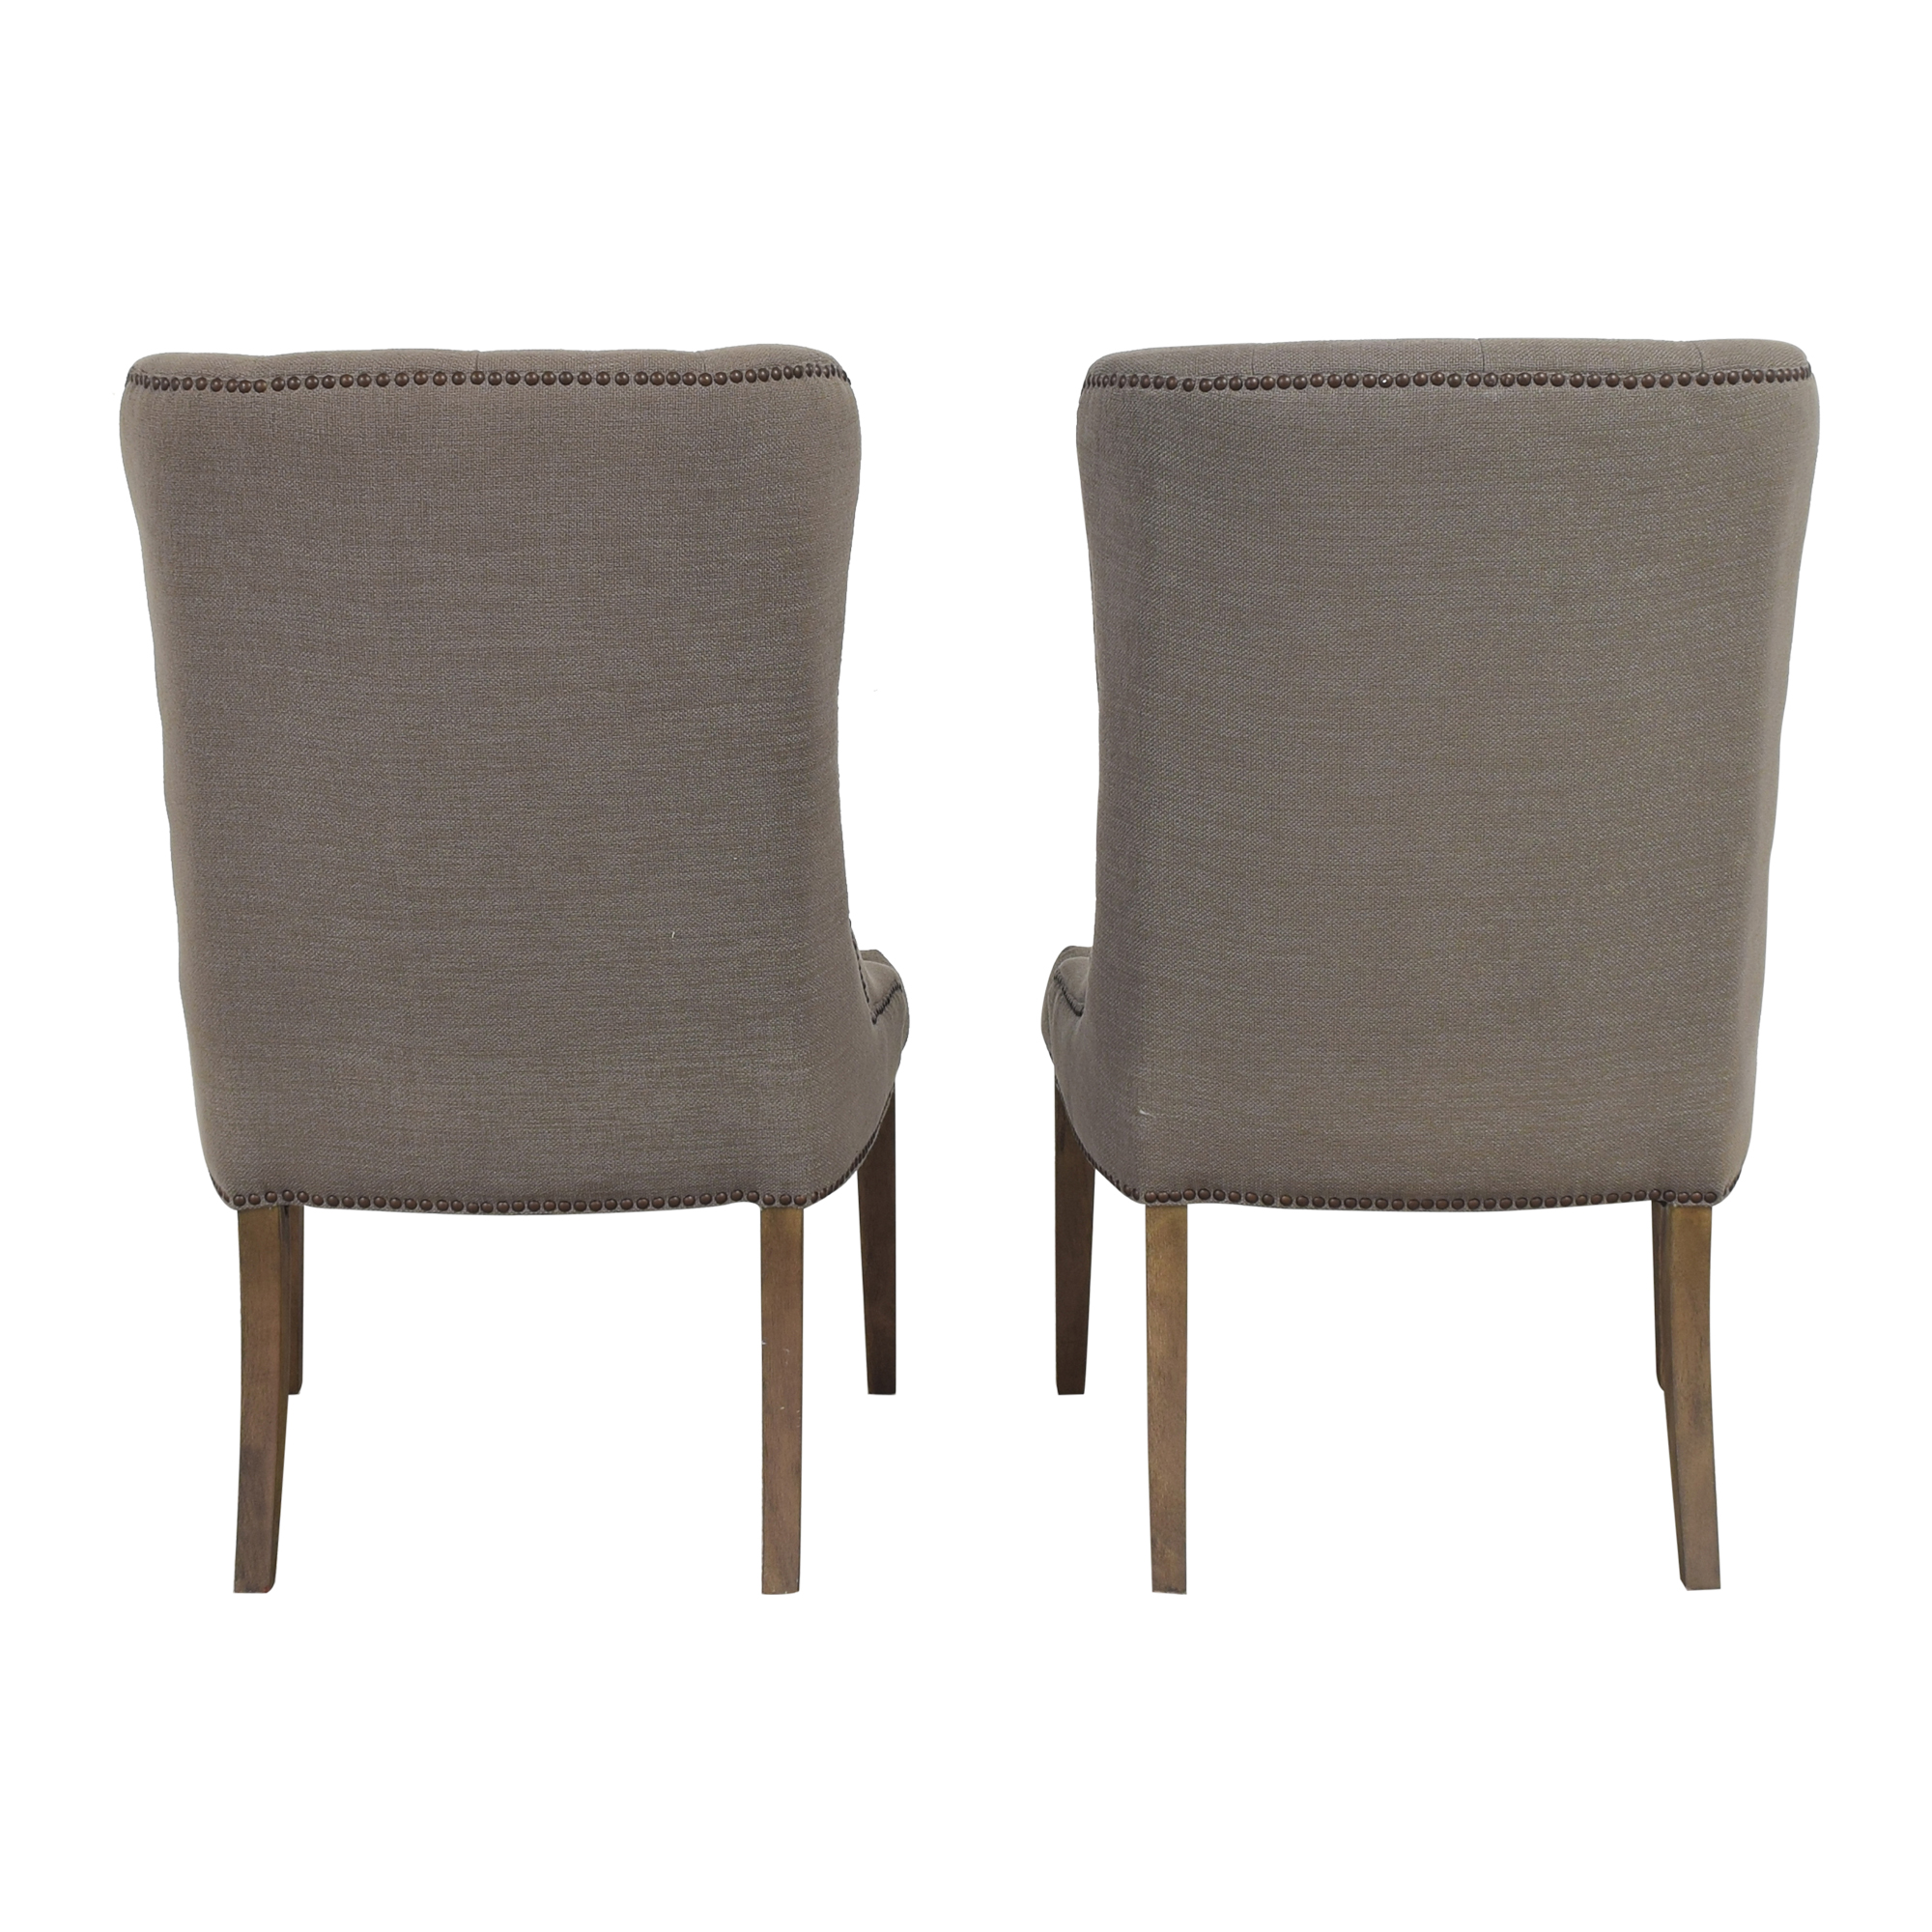 Four Hands Four Hands Elouise Dining Chairs second hand